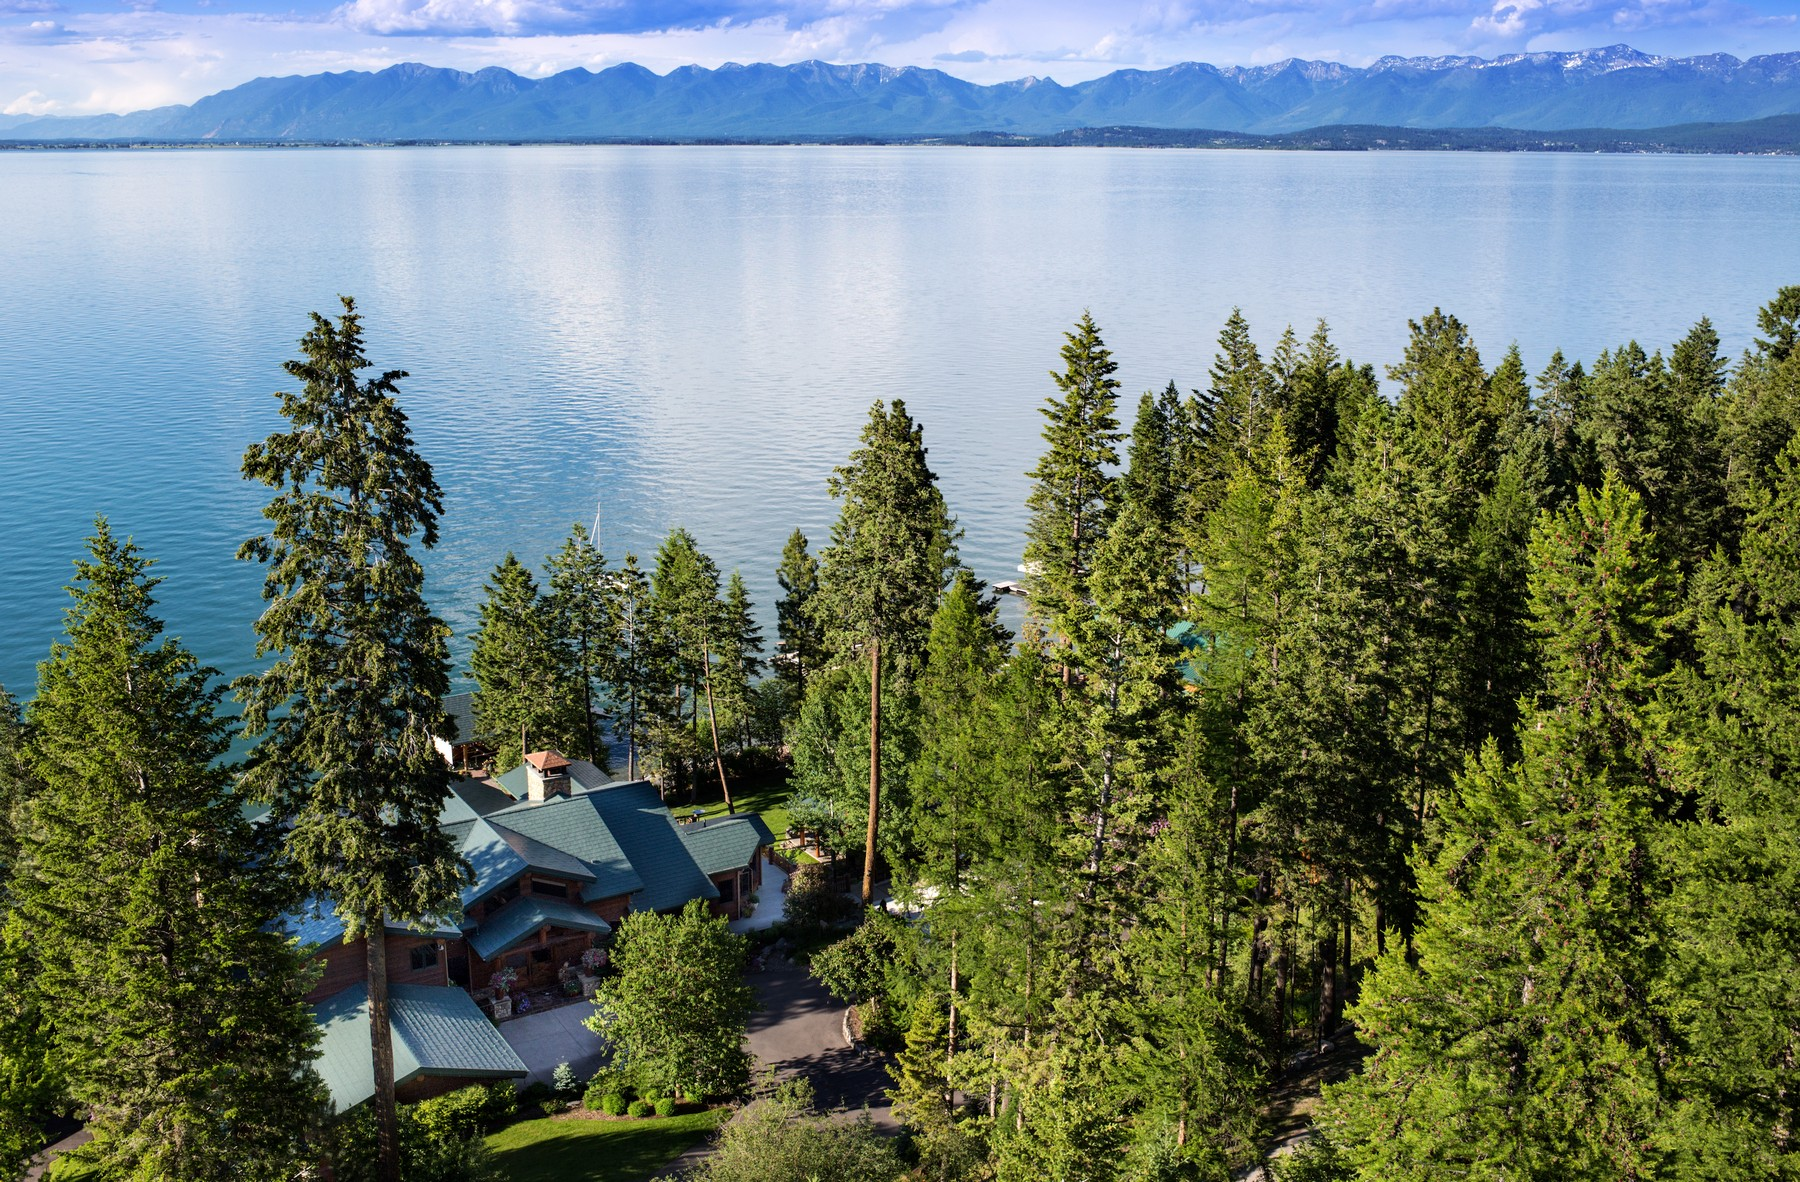 Single Family Home for Sale at 527 Conrad Point 527 Conrad Point Drive Lakeside, Montana 59922 United States